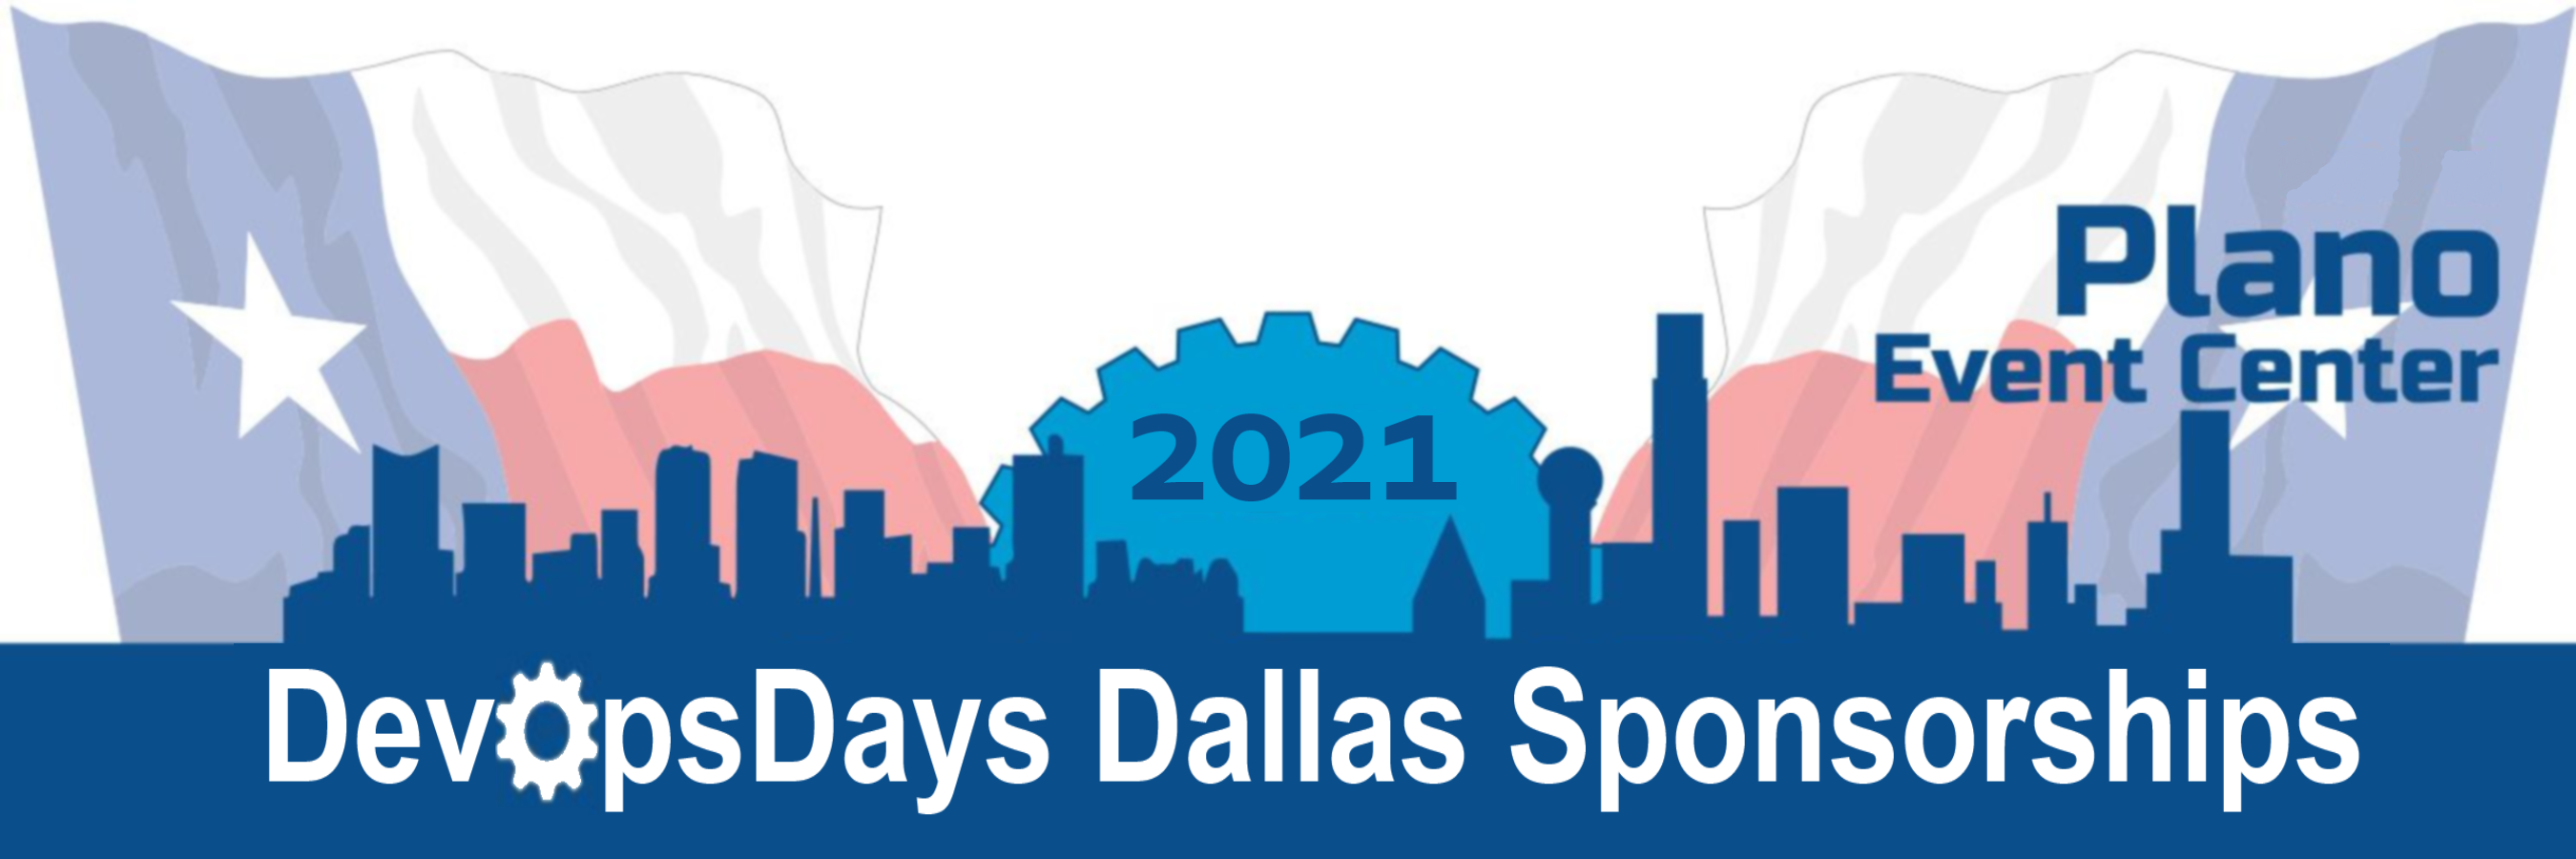 DevOpsDays Dallas 2021